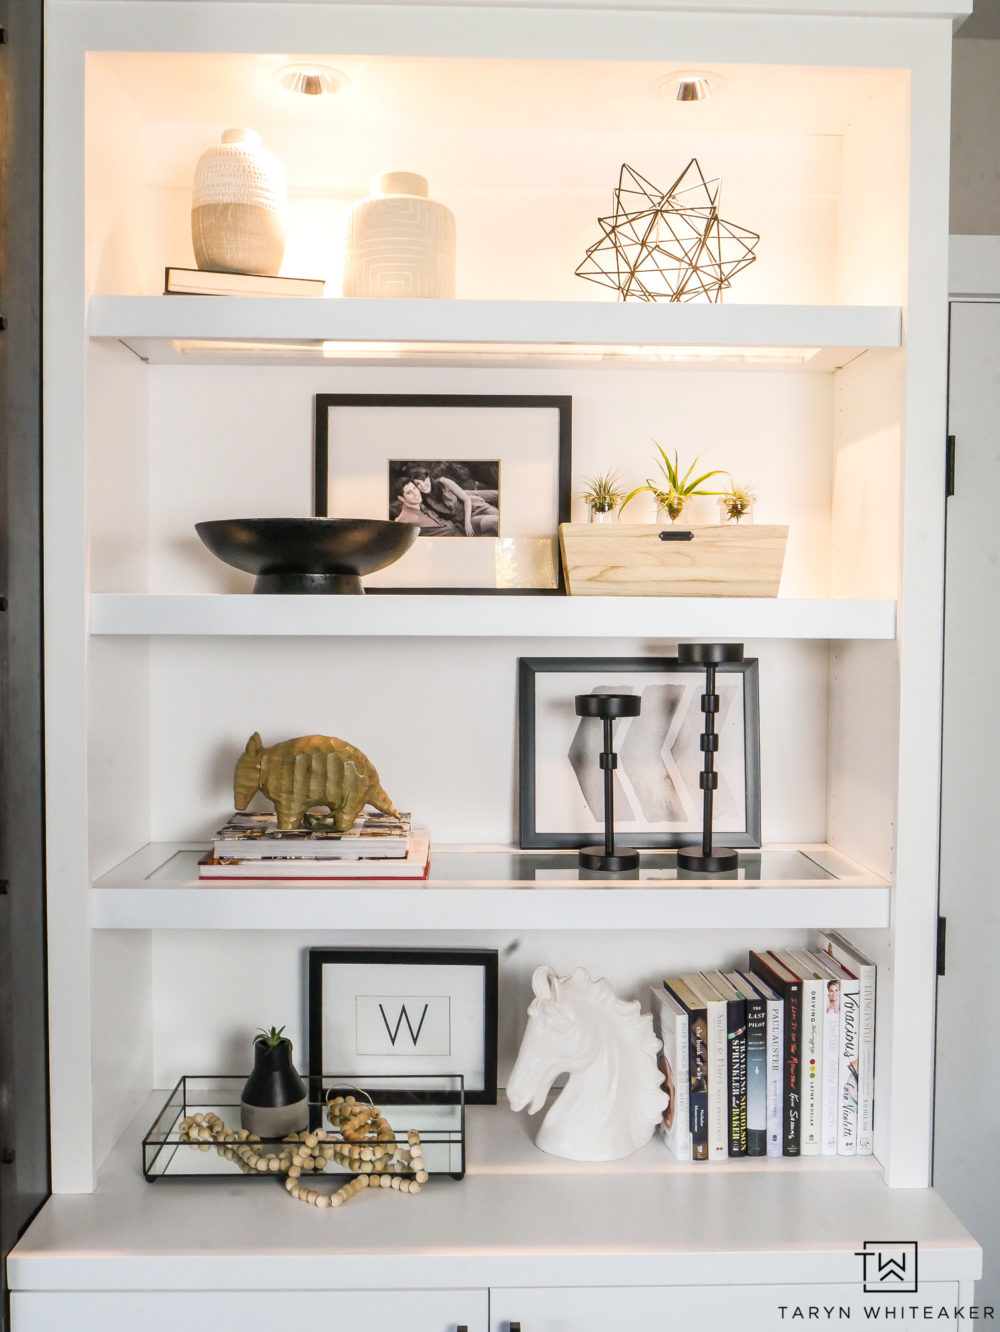 Shelf Styling! Modern Black and white decor on open shelves.